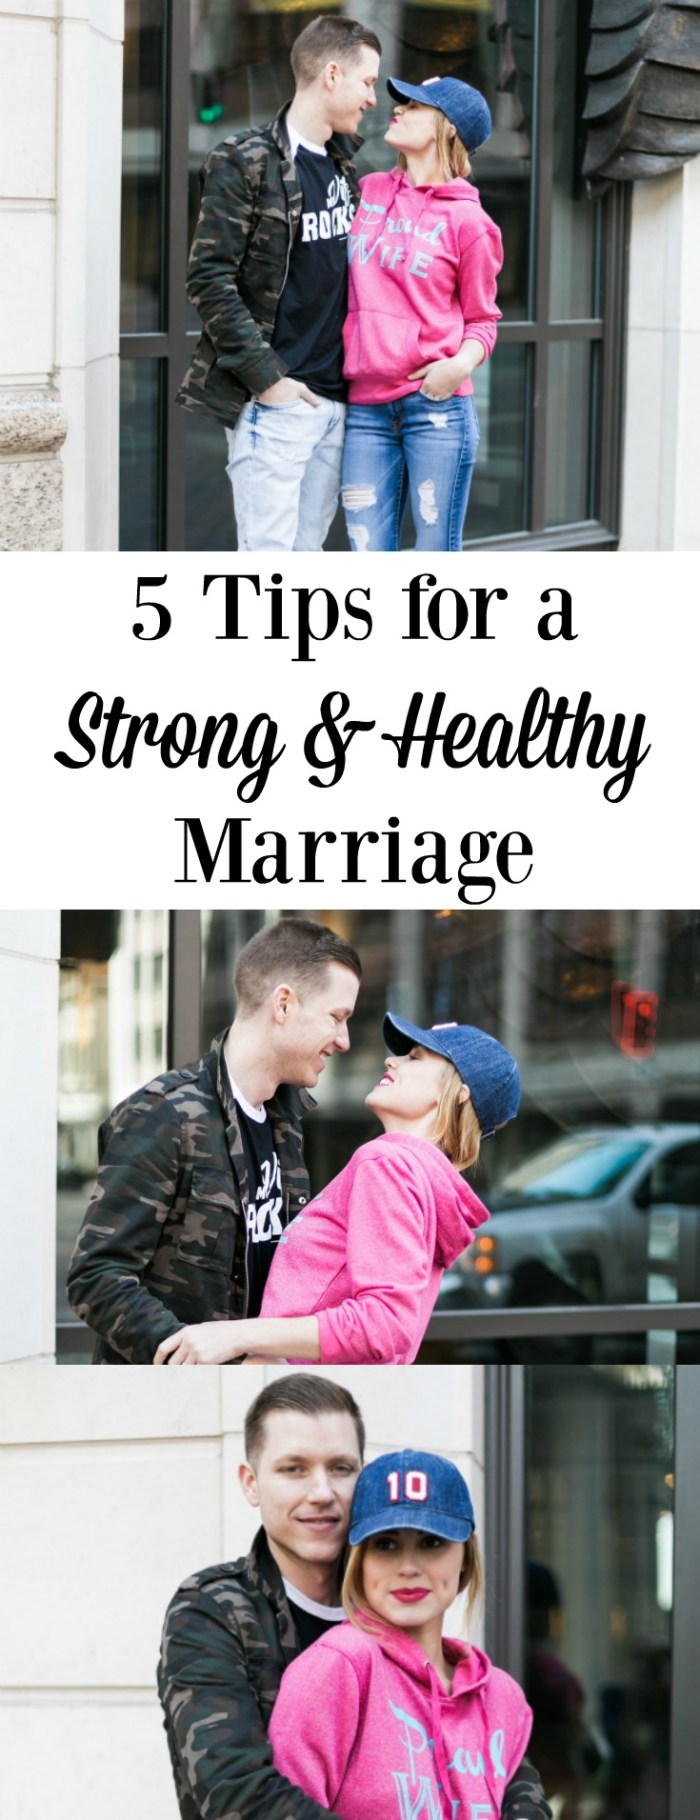 5 tips to a healthy marriage | Marriage tips | How to have a thriving marriage | Uptown with Elly Brown